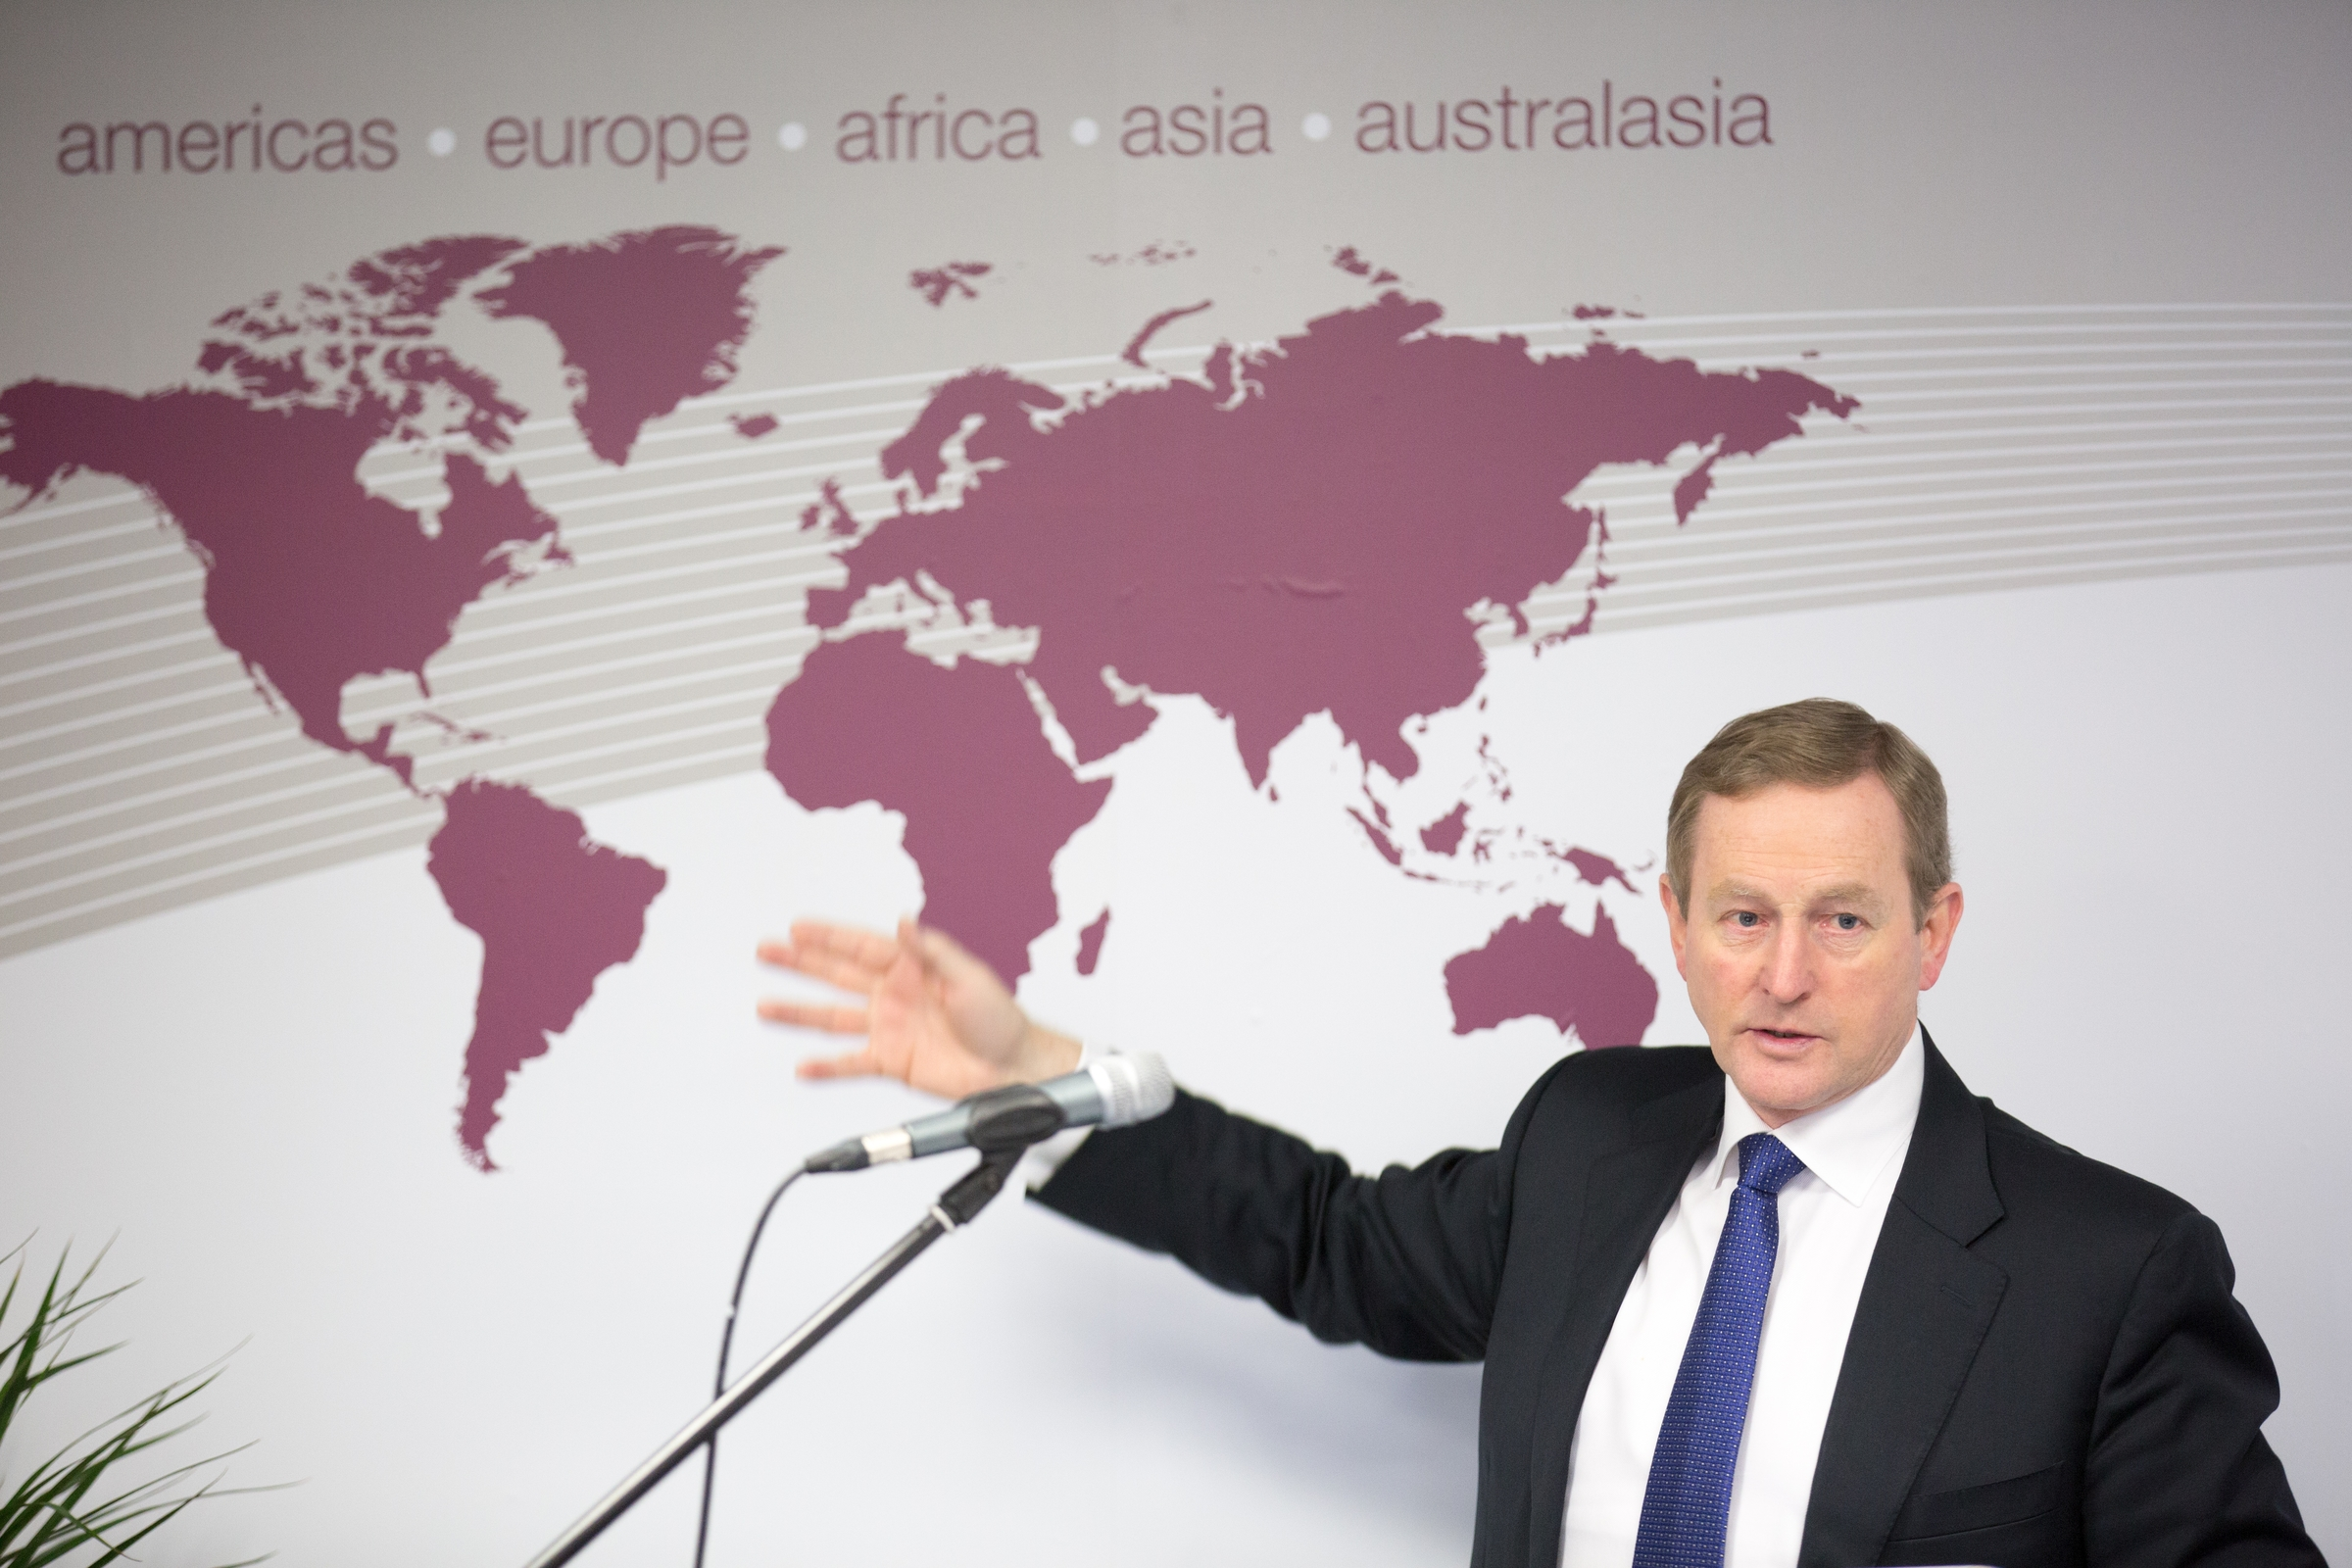 20/02/2016 An Taoiseach Enda Kenny officially opening the new BNI global office in Castlebar, Co. Mayo. Photo : Keith Heneghan / Phocus.